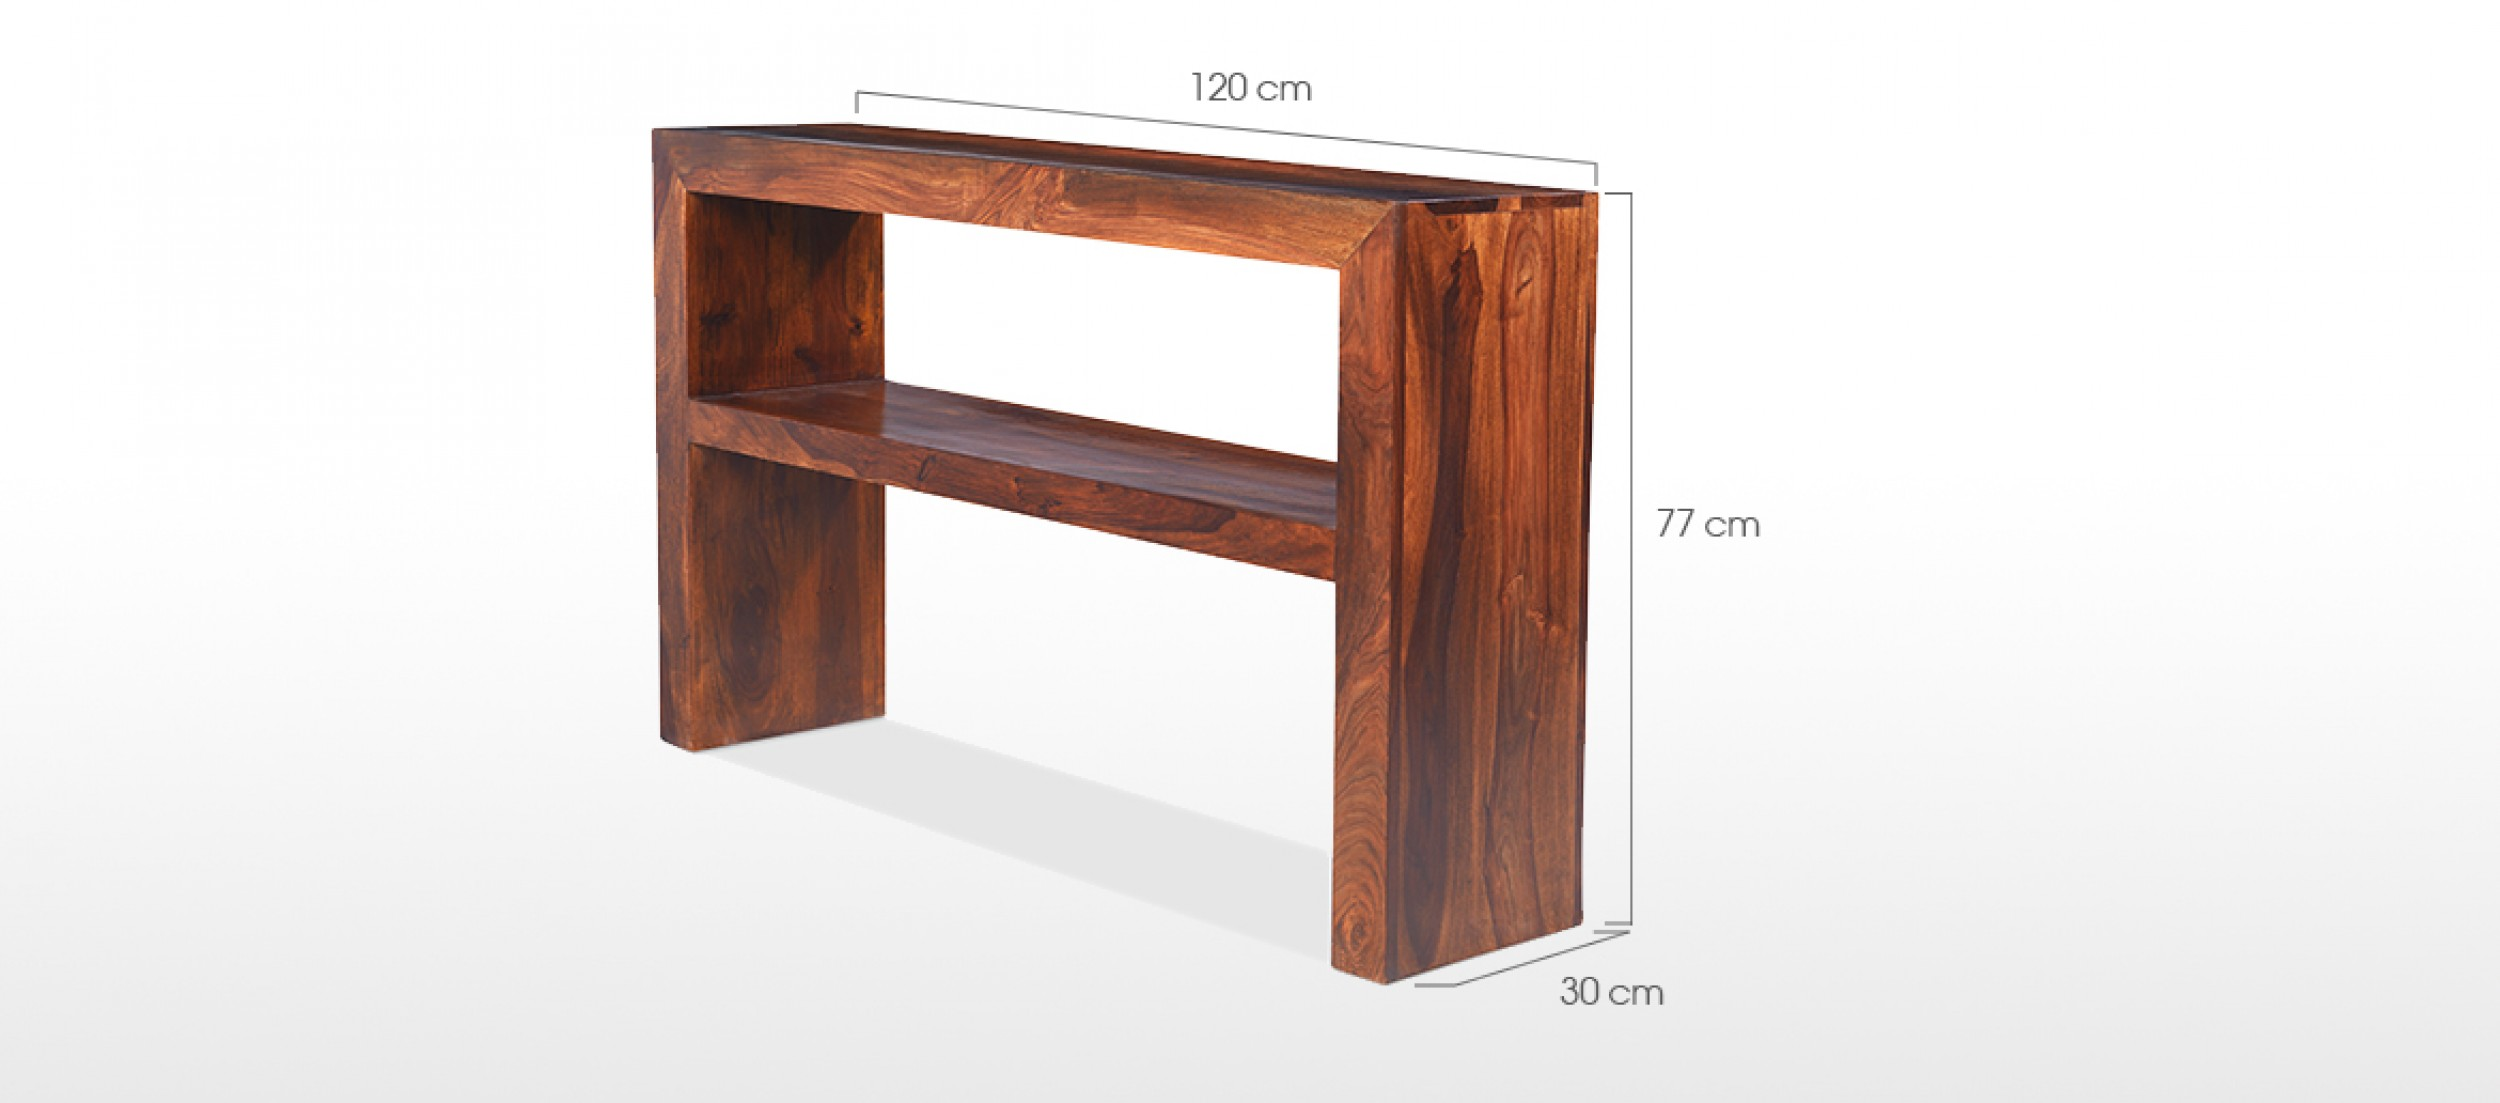 Cube sheesham console table quercus living for Table design 90 cm